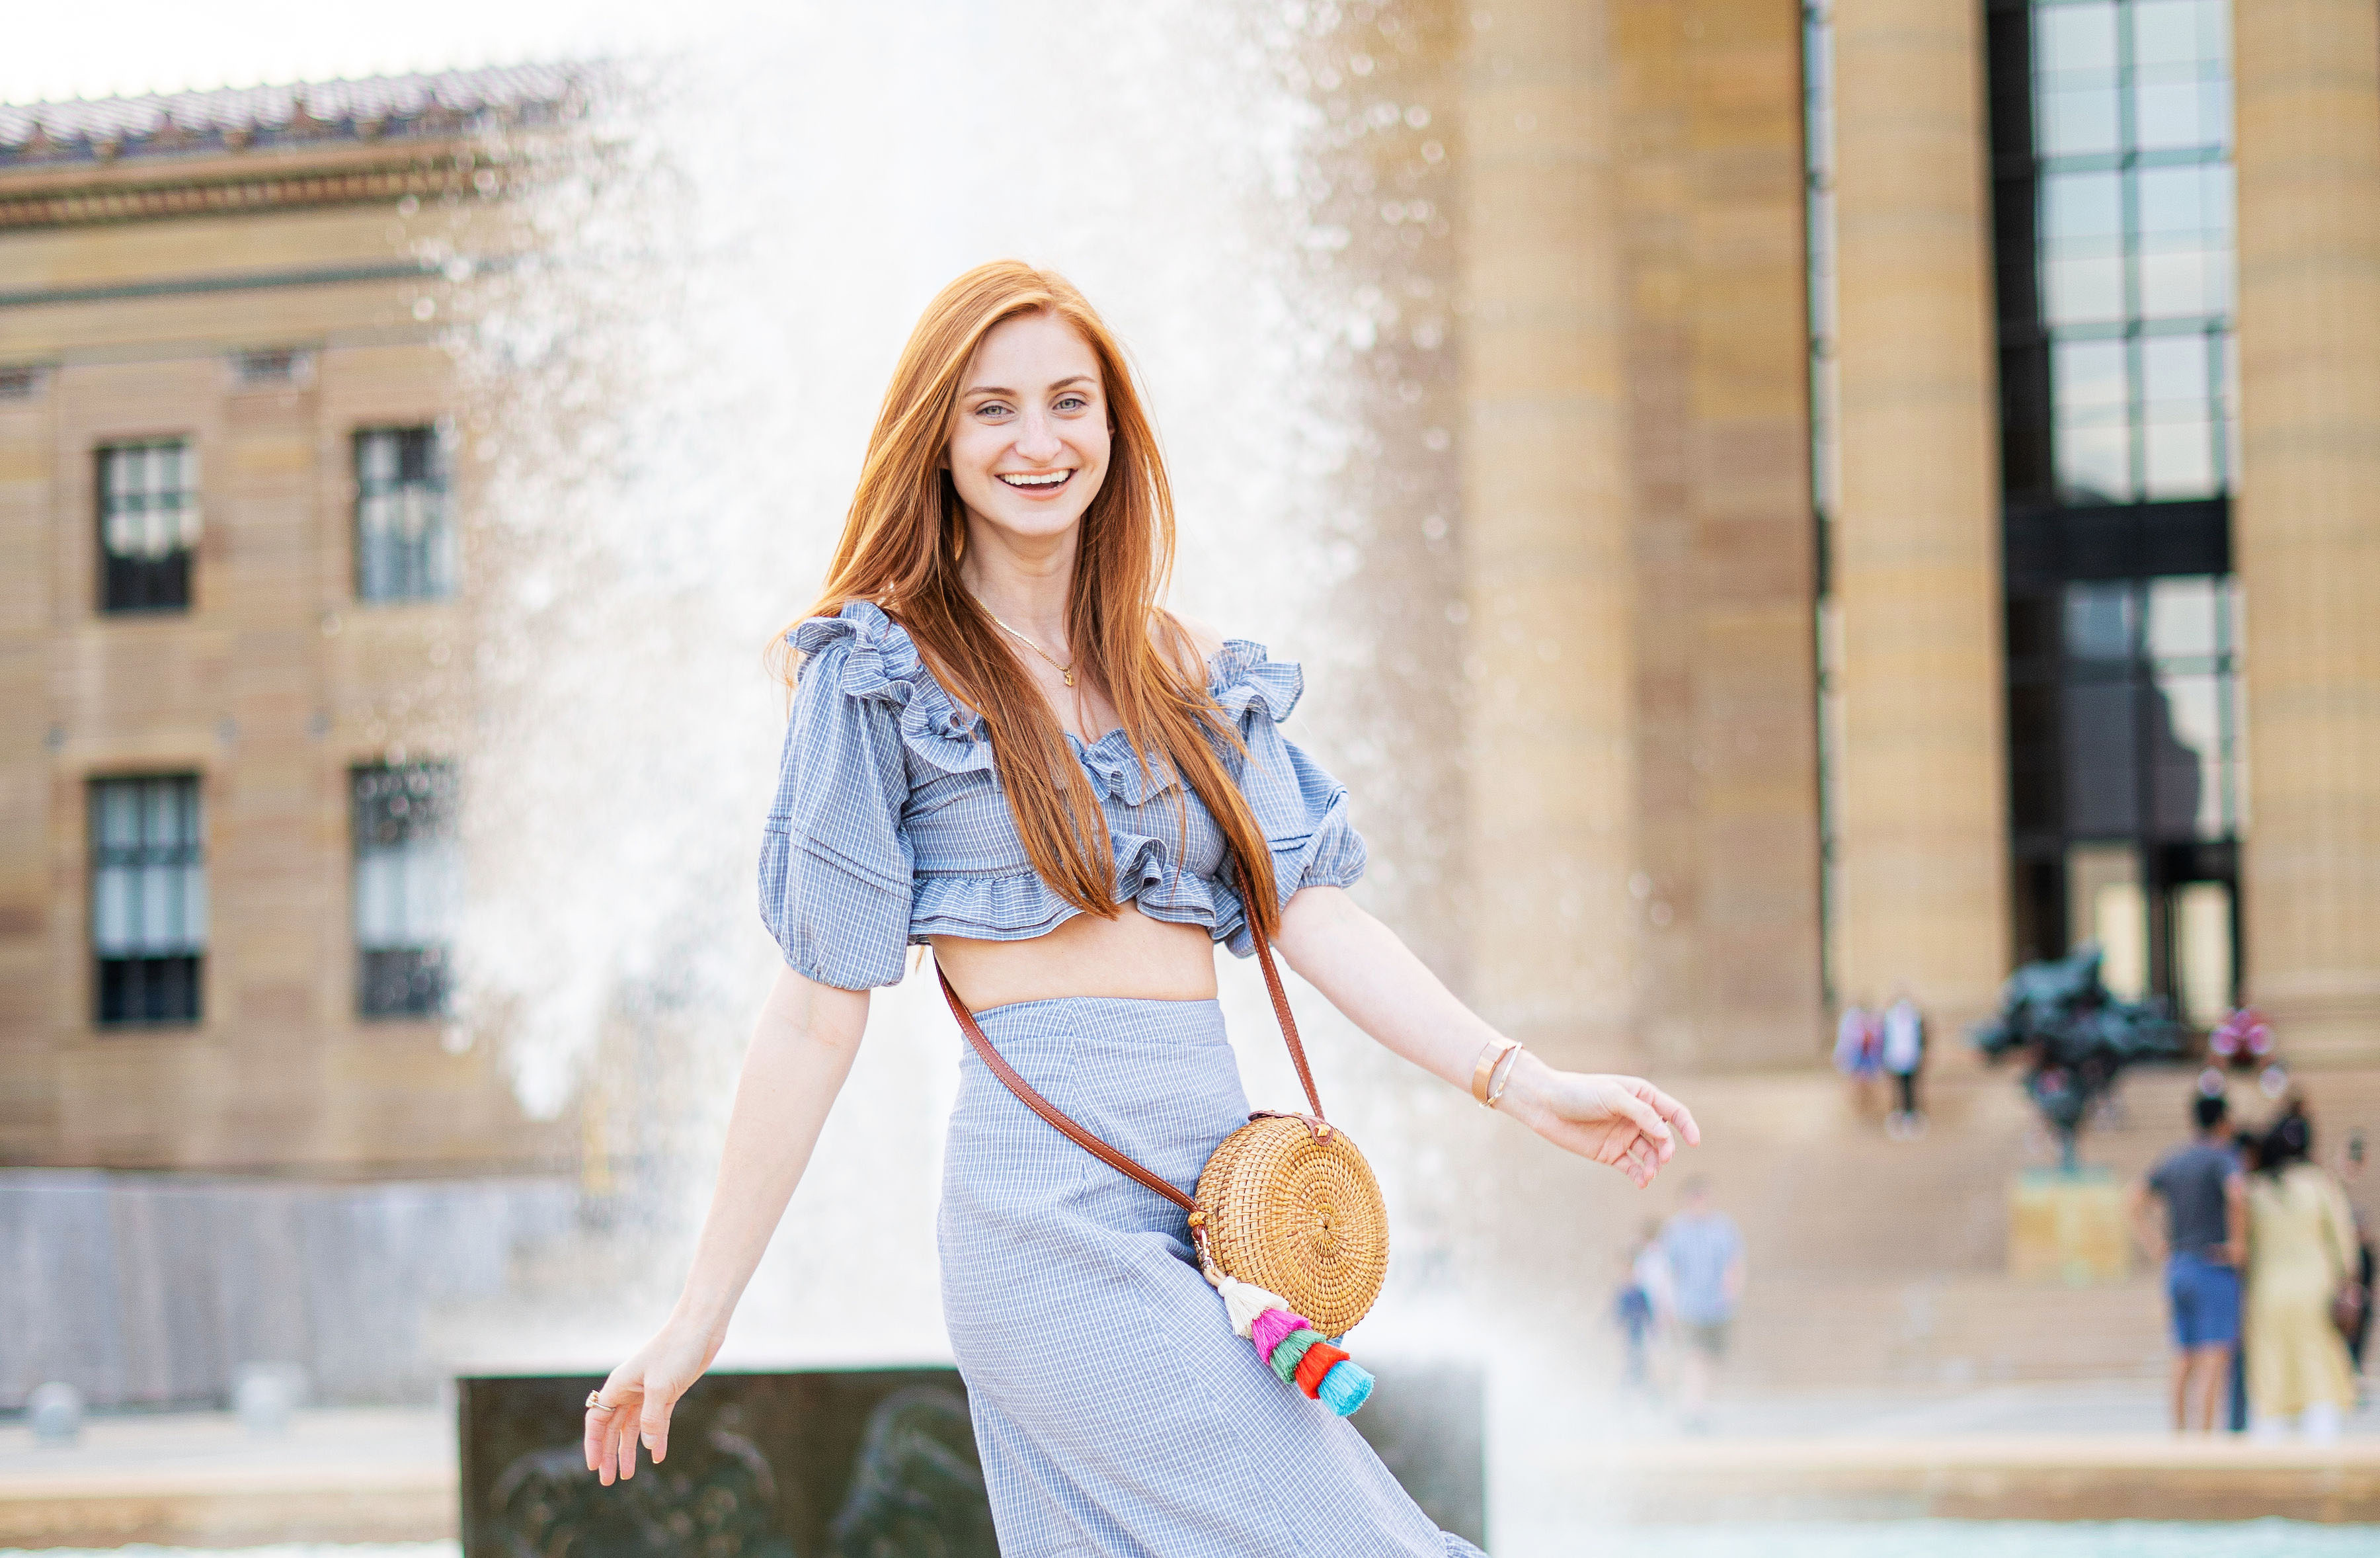 Ruffles, Erin Leigh of She's Red Haute redhead smiling and wearing blue ruffle outfit in front of water fountain with brown circle bag